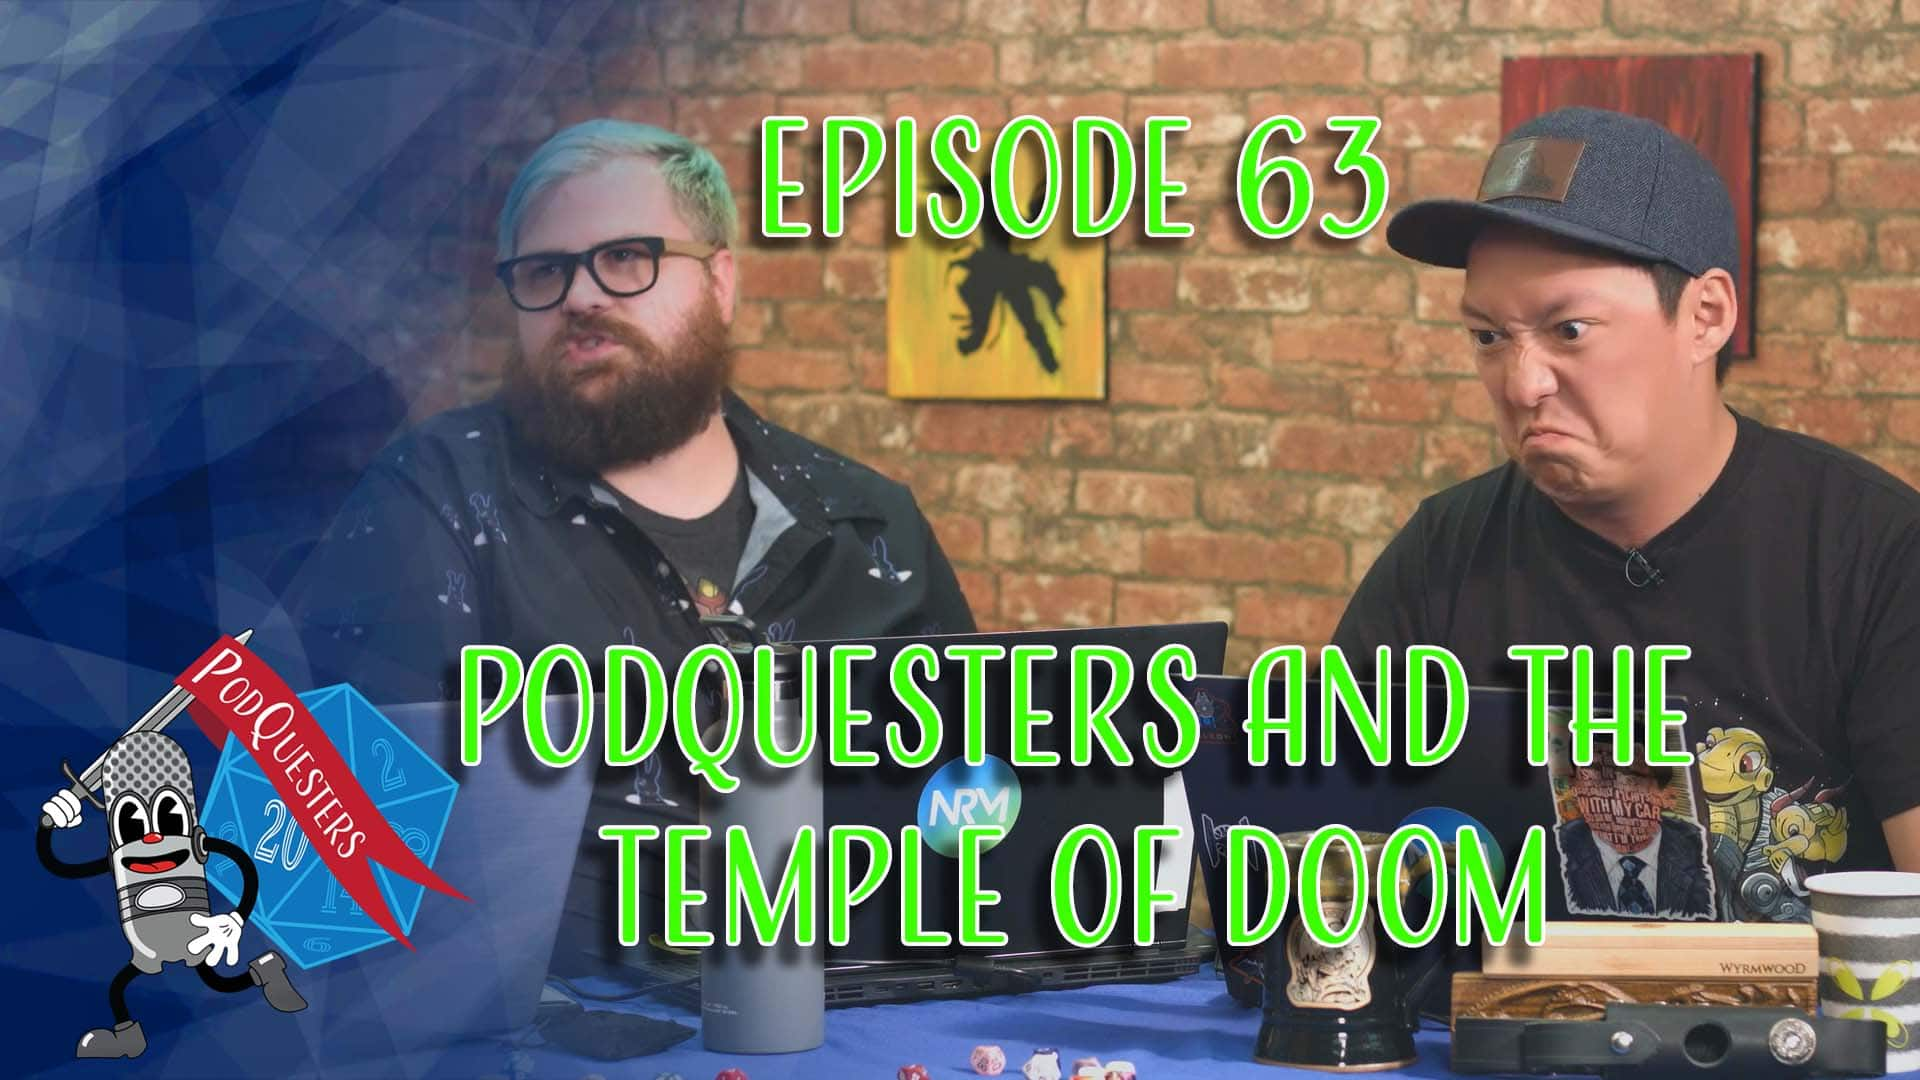 Podquesters - Episode 63: Podquesters and the Temple of Doom